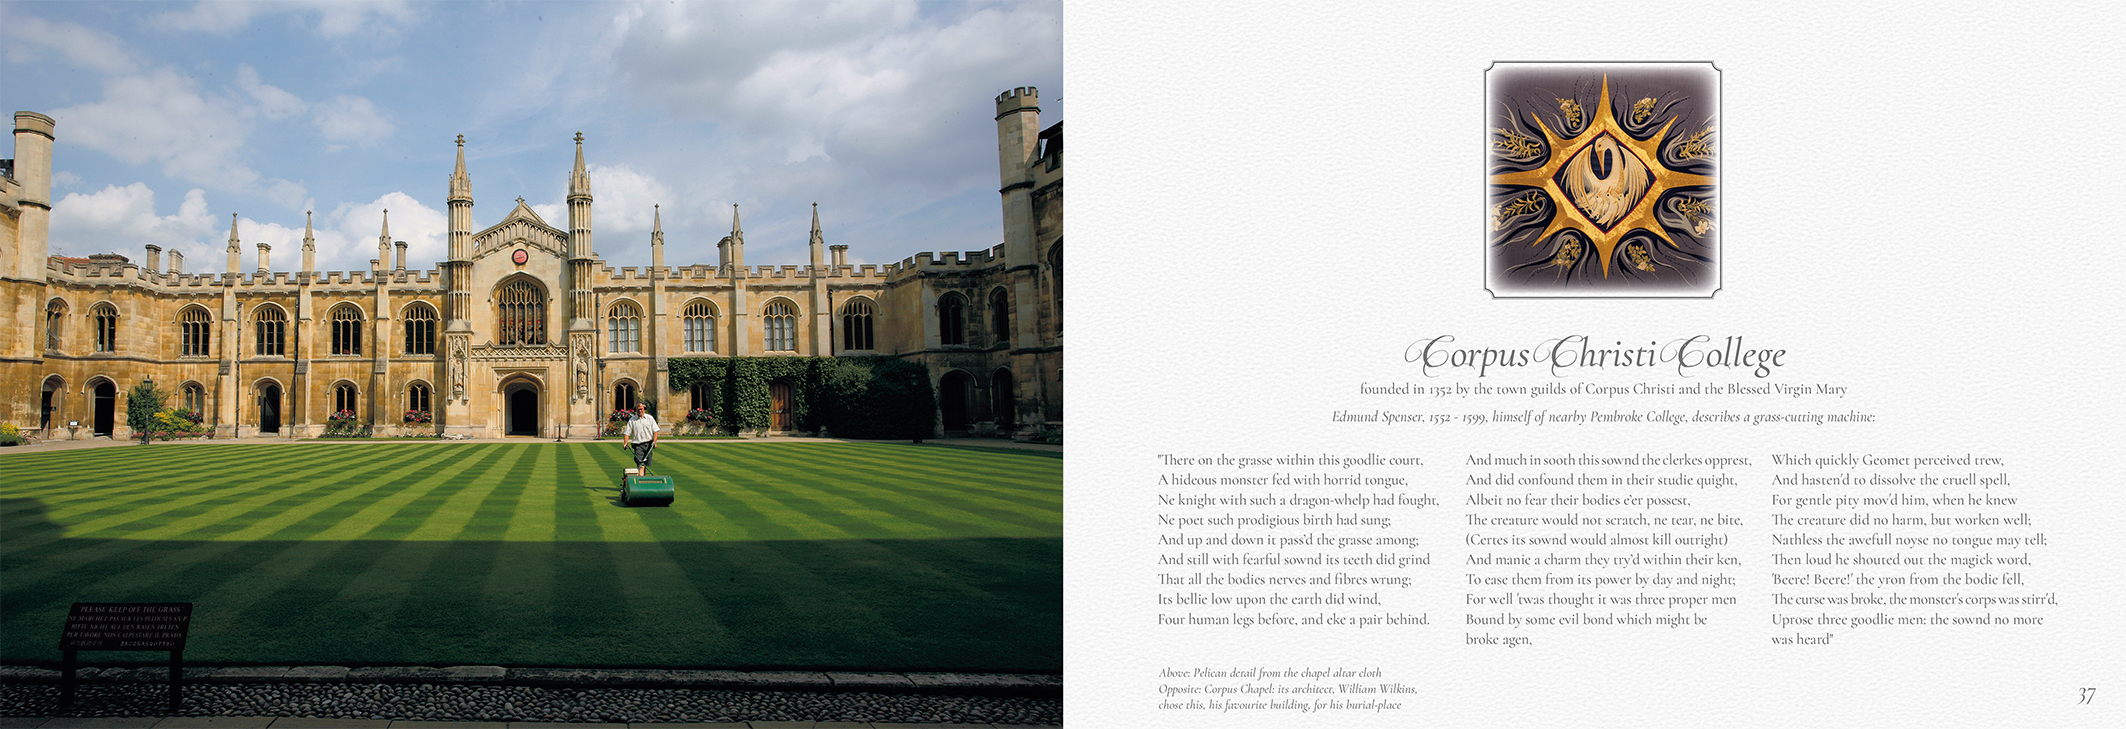 Cambridge A City For All Seasons Corpus Christi College